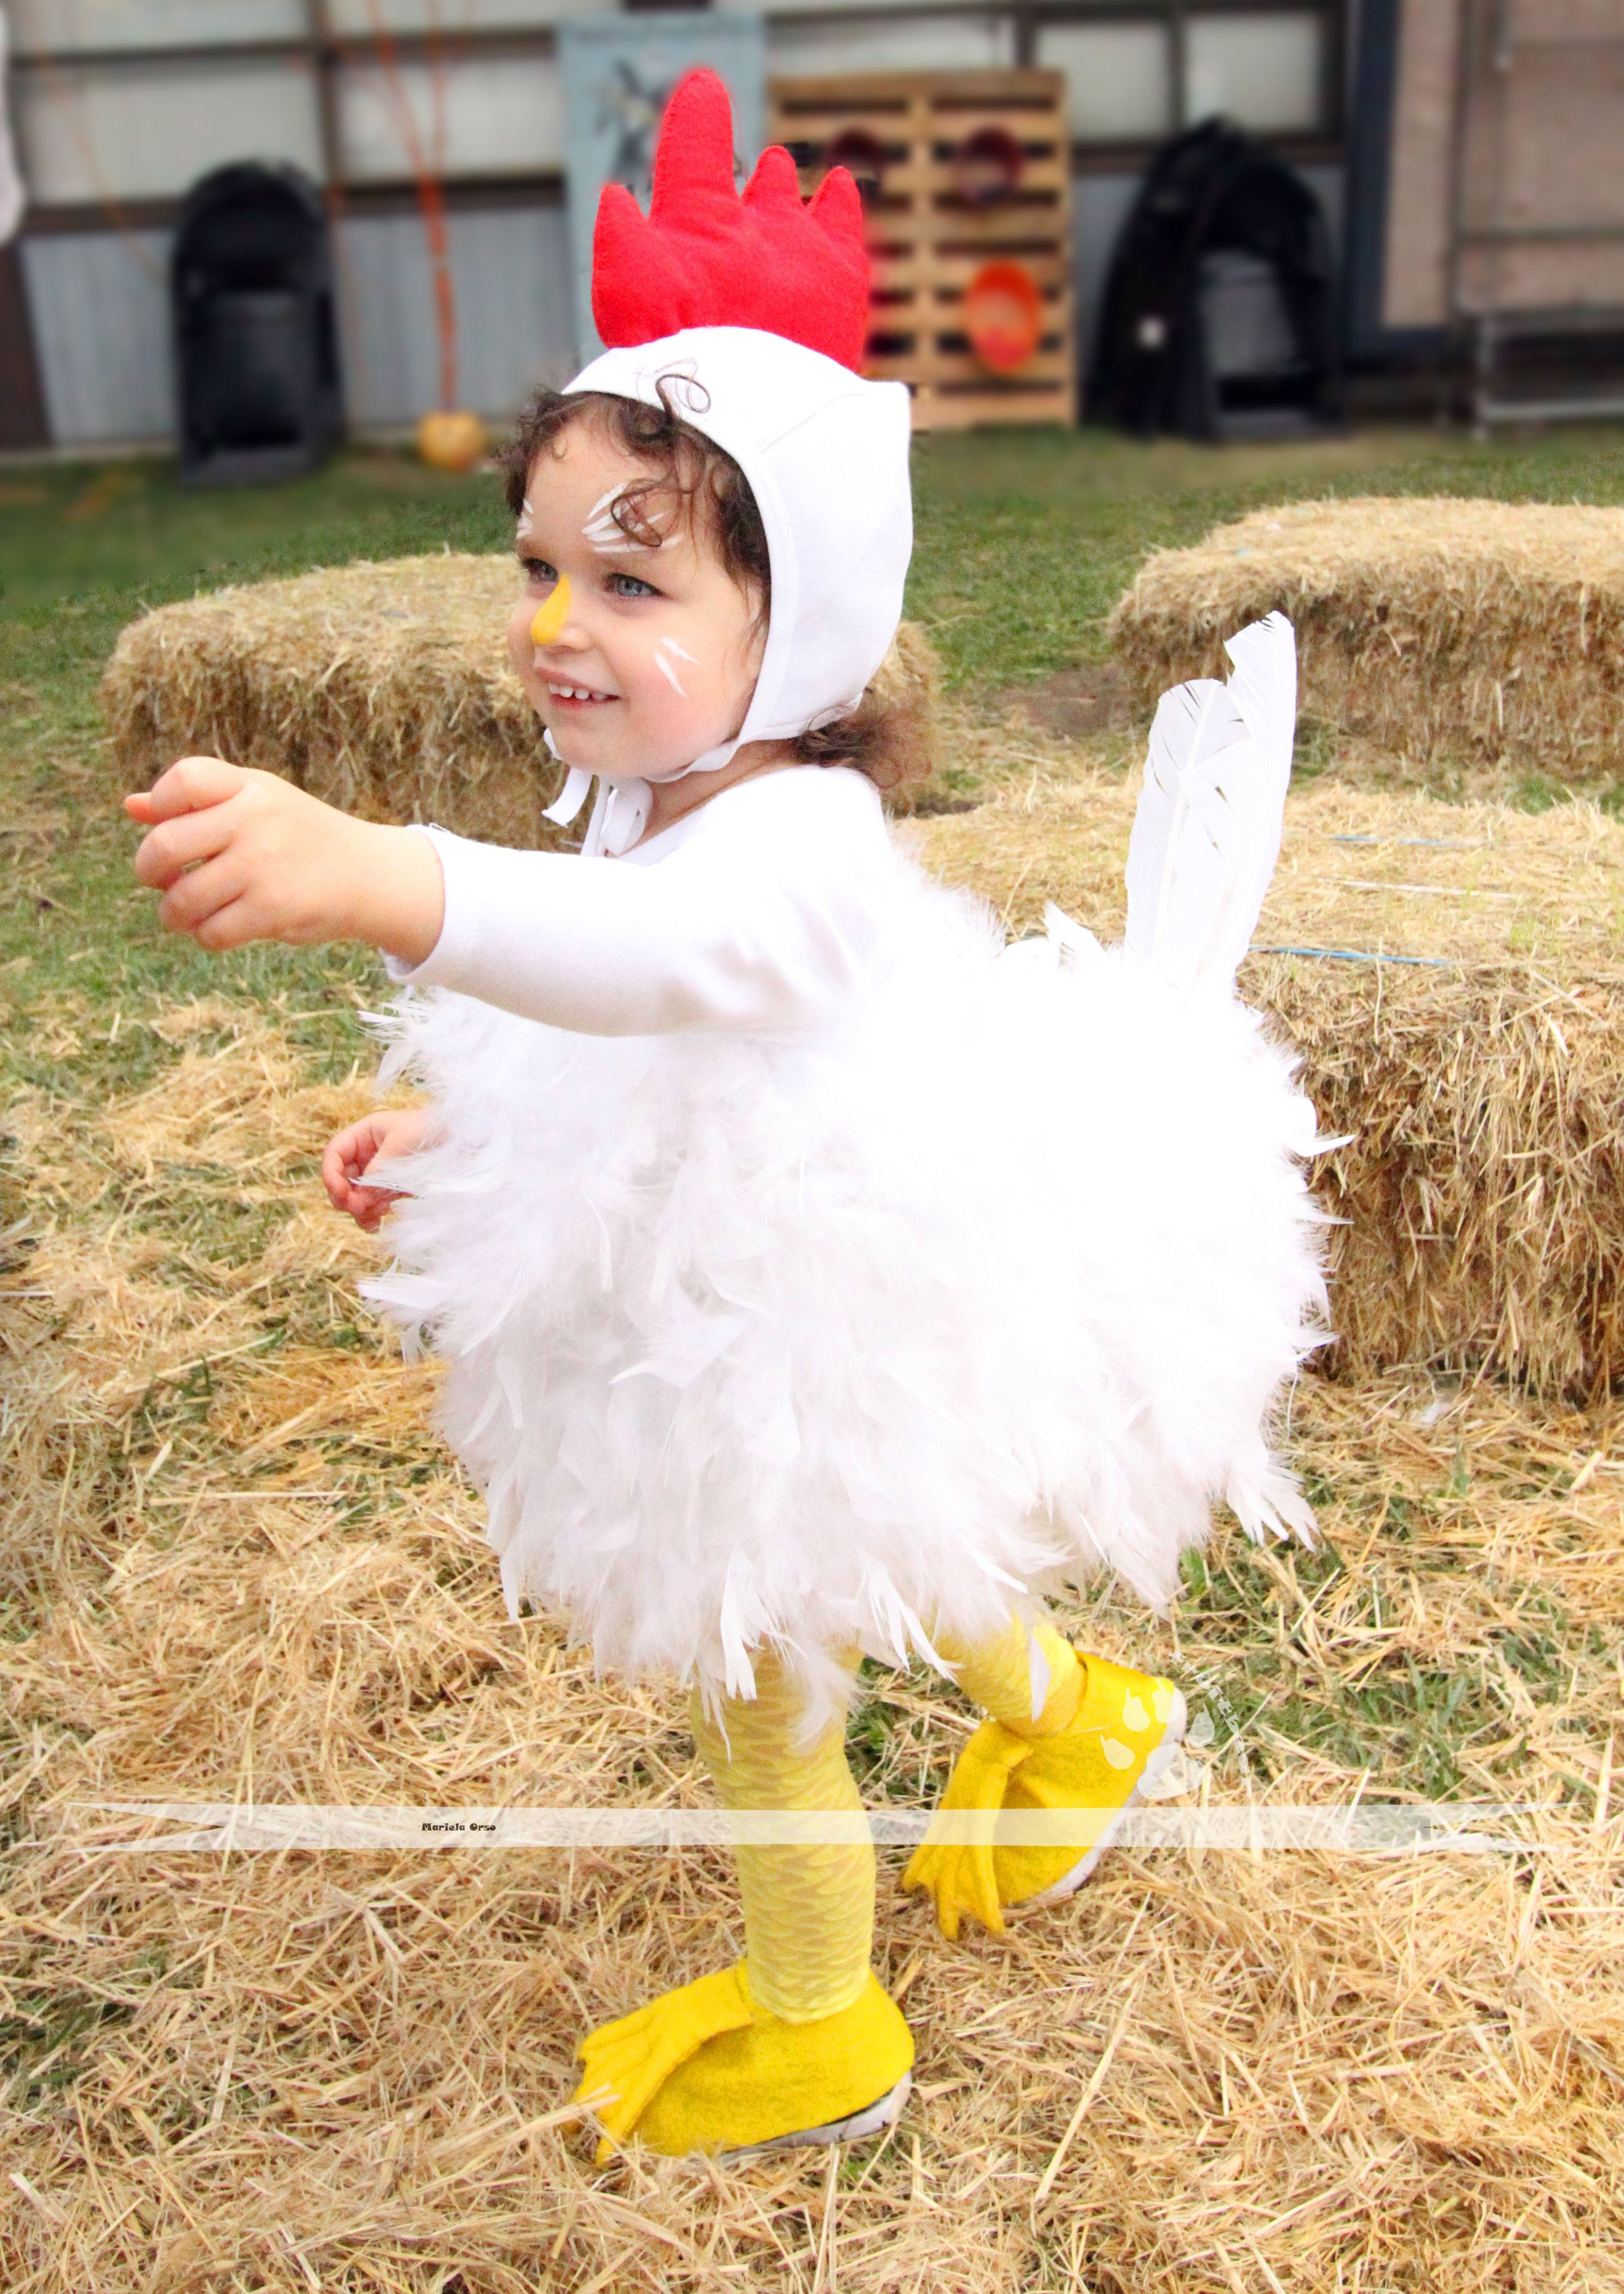 Best ideas about Chicken Costume DIY . Save or Pin SUPER CUTE Toddler or baby funny chicken costume chikin Now.